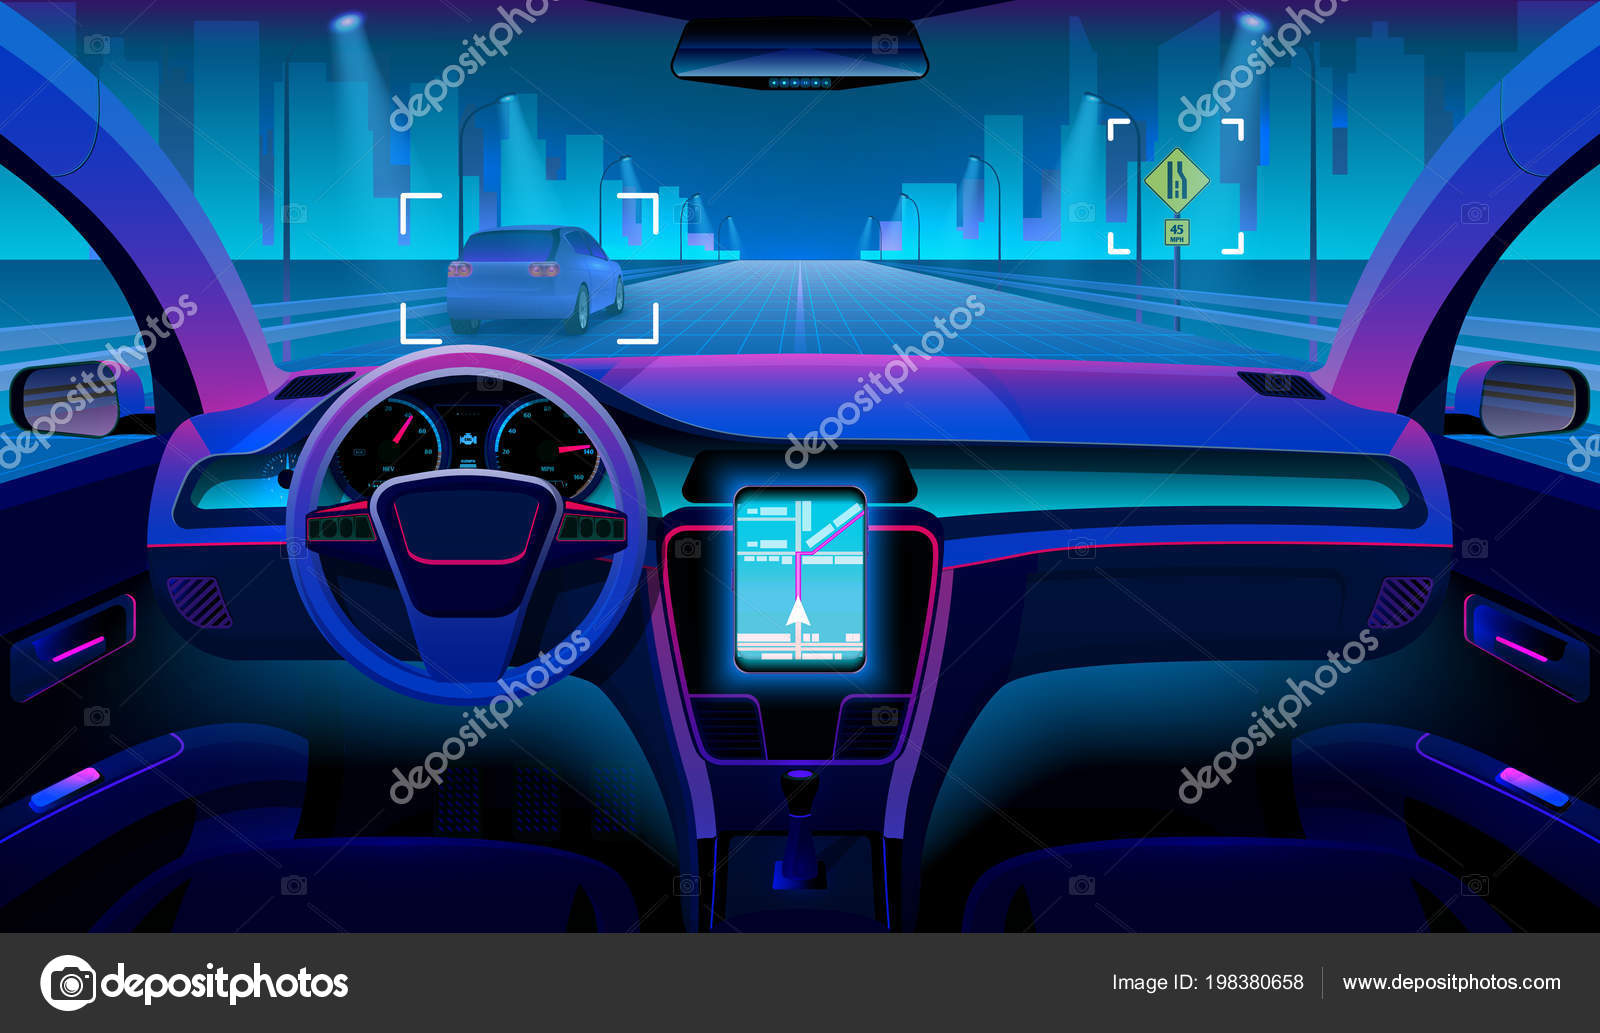 Future Autonomous Vehicle Driverless Car Interior With Obstacles